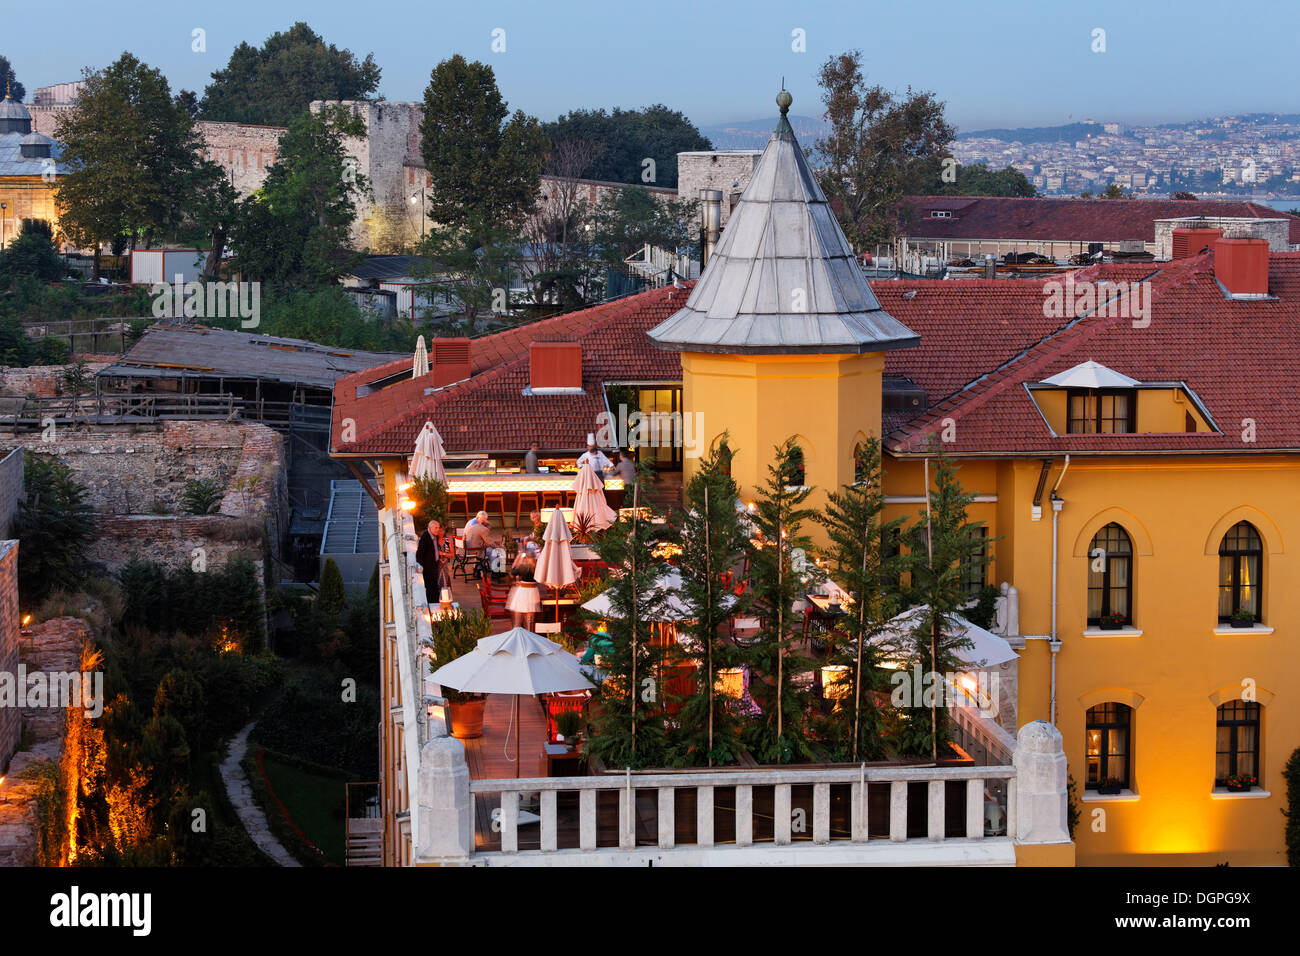 Four Seasons Hotel, Old City Sultanahmet, Istanbul, Turkey, Europe Stock Photo